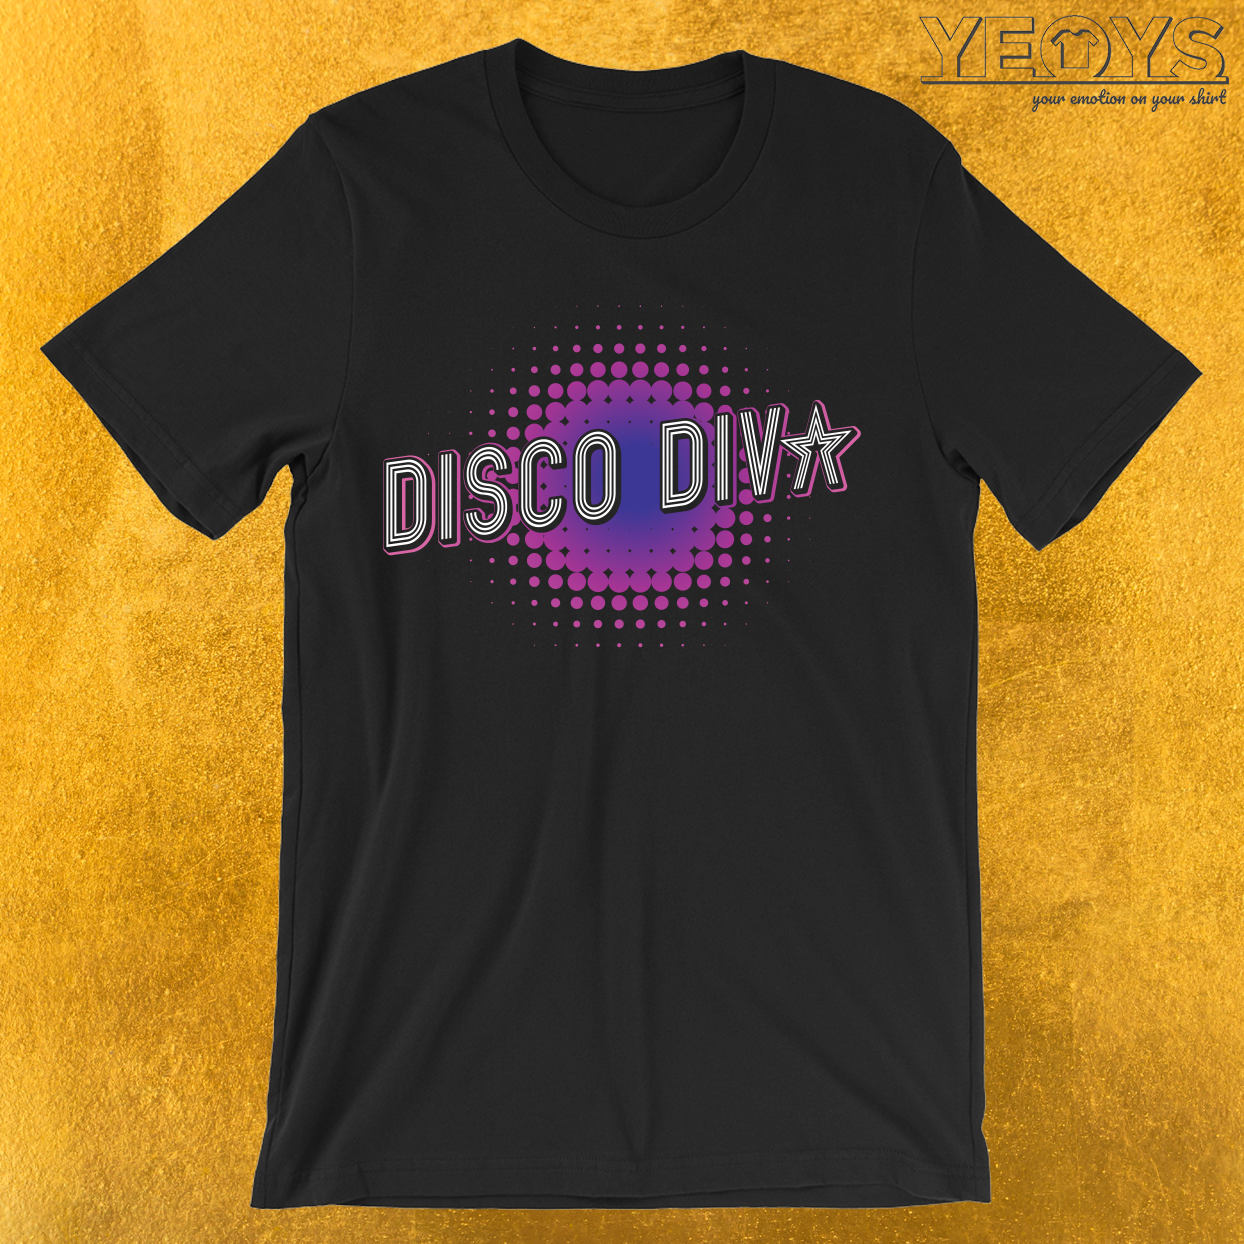 Disco Diva Dance Club T-Shirt